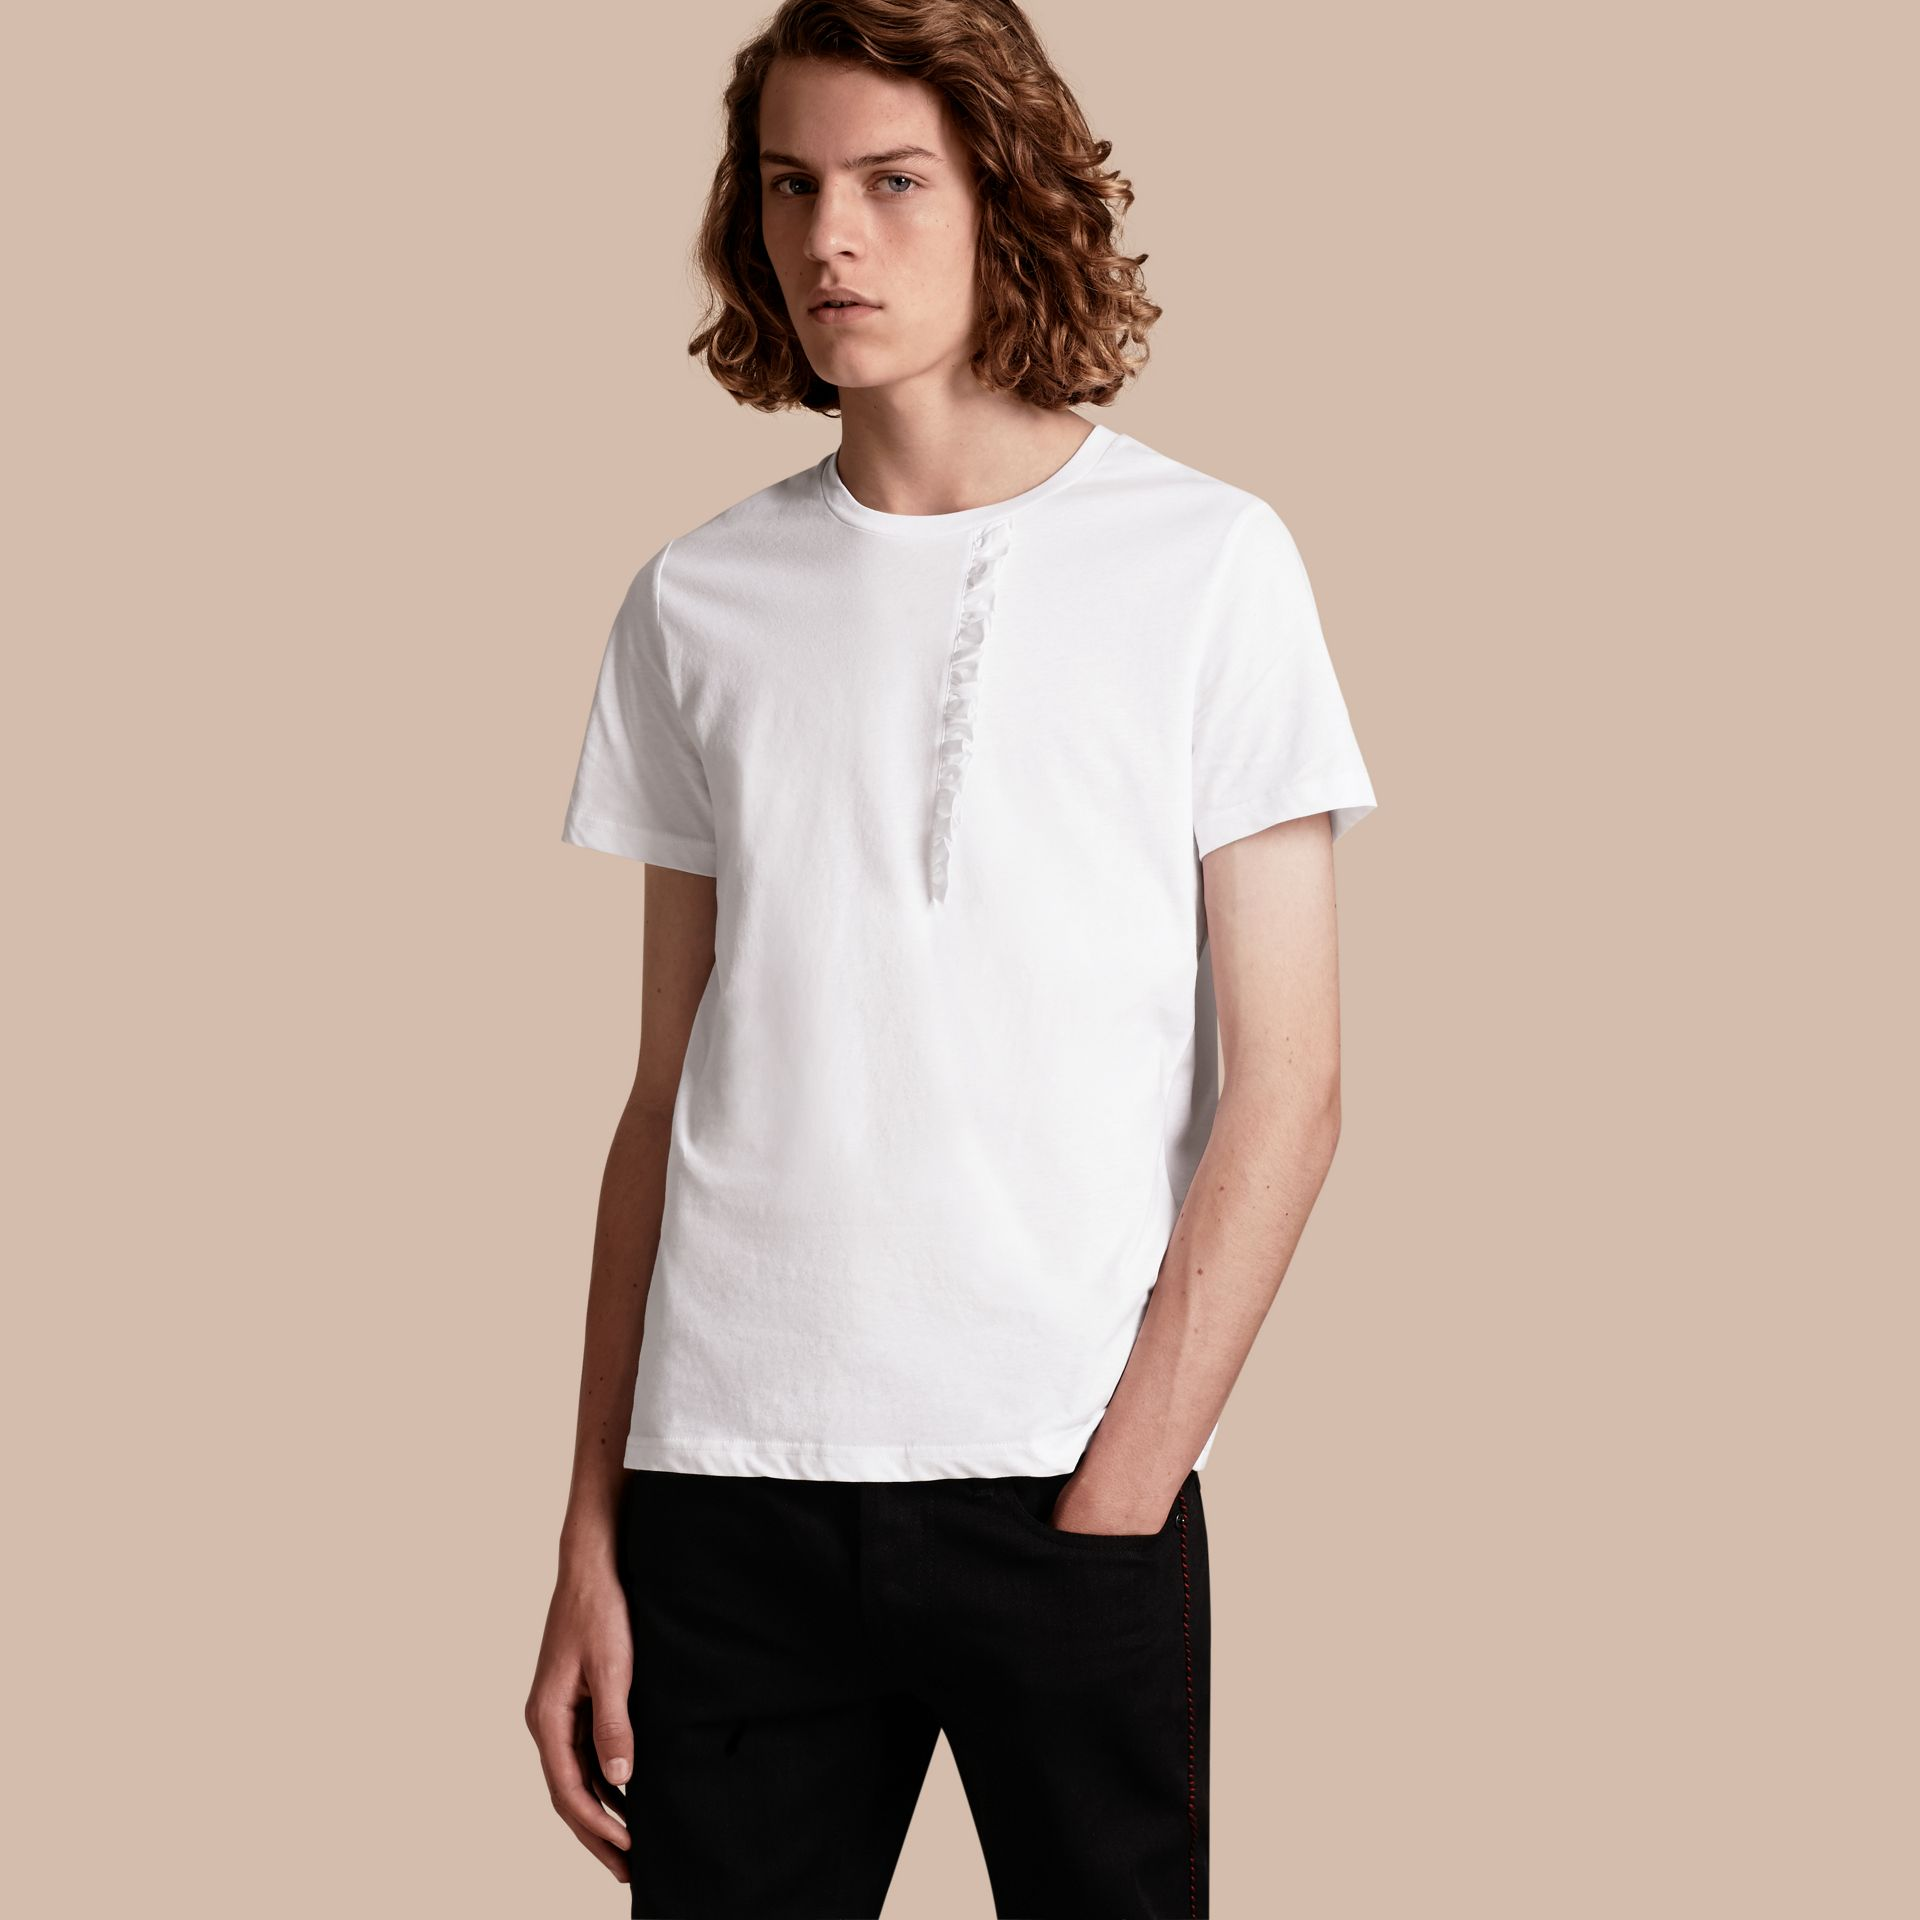 White Ruffle Detail Cotton T-shirt White - gallery image 1